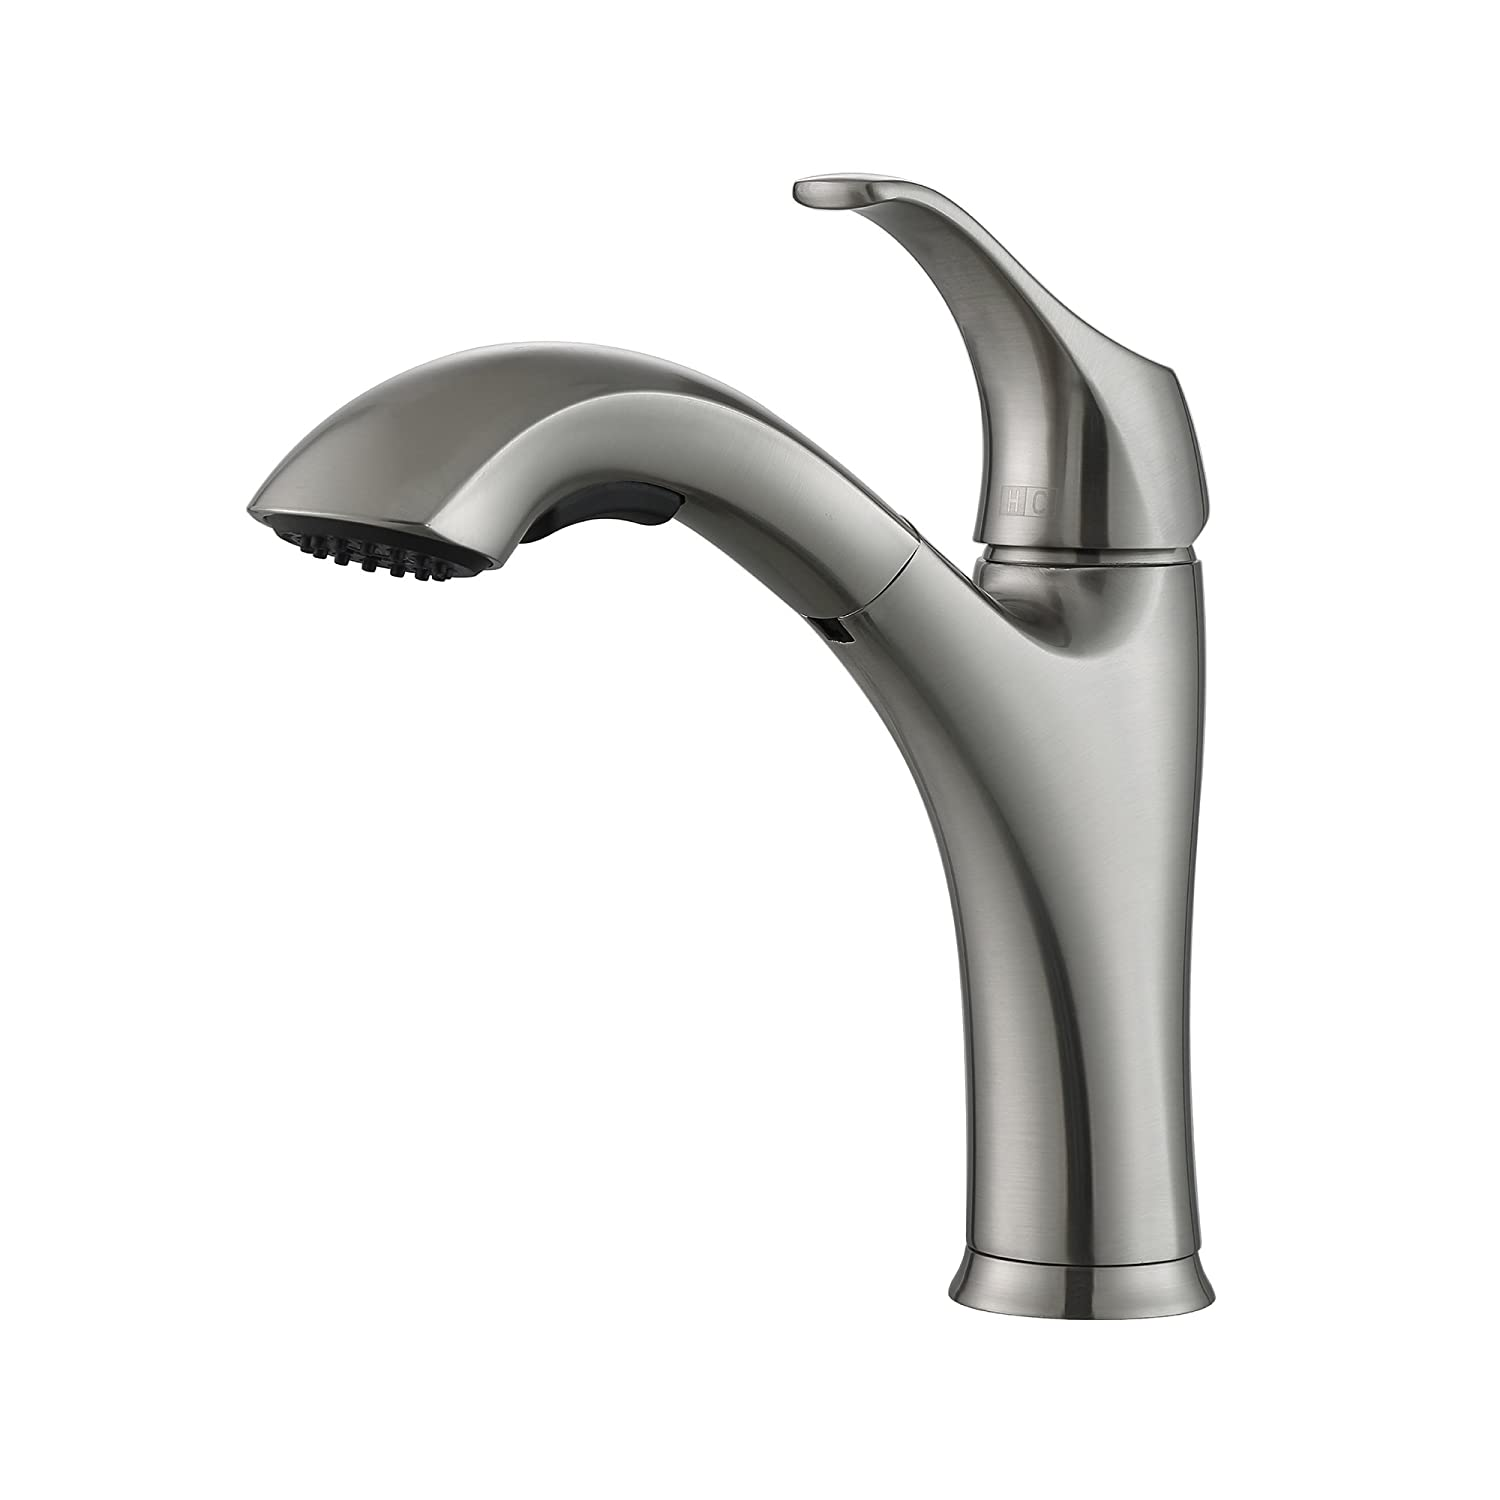 Kraus kpf 2250 single lever pull out kitchen faucet stainless steel amazon com